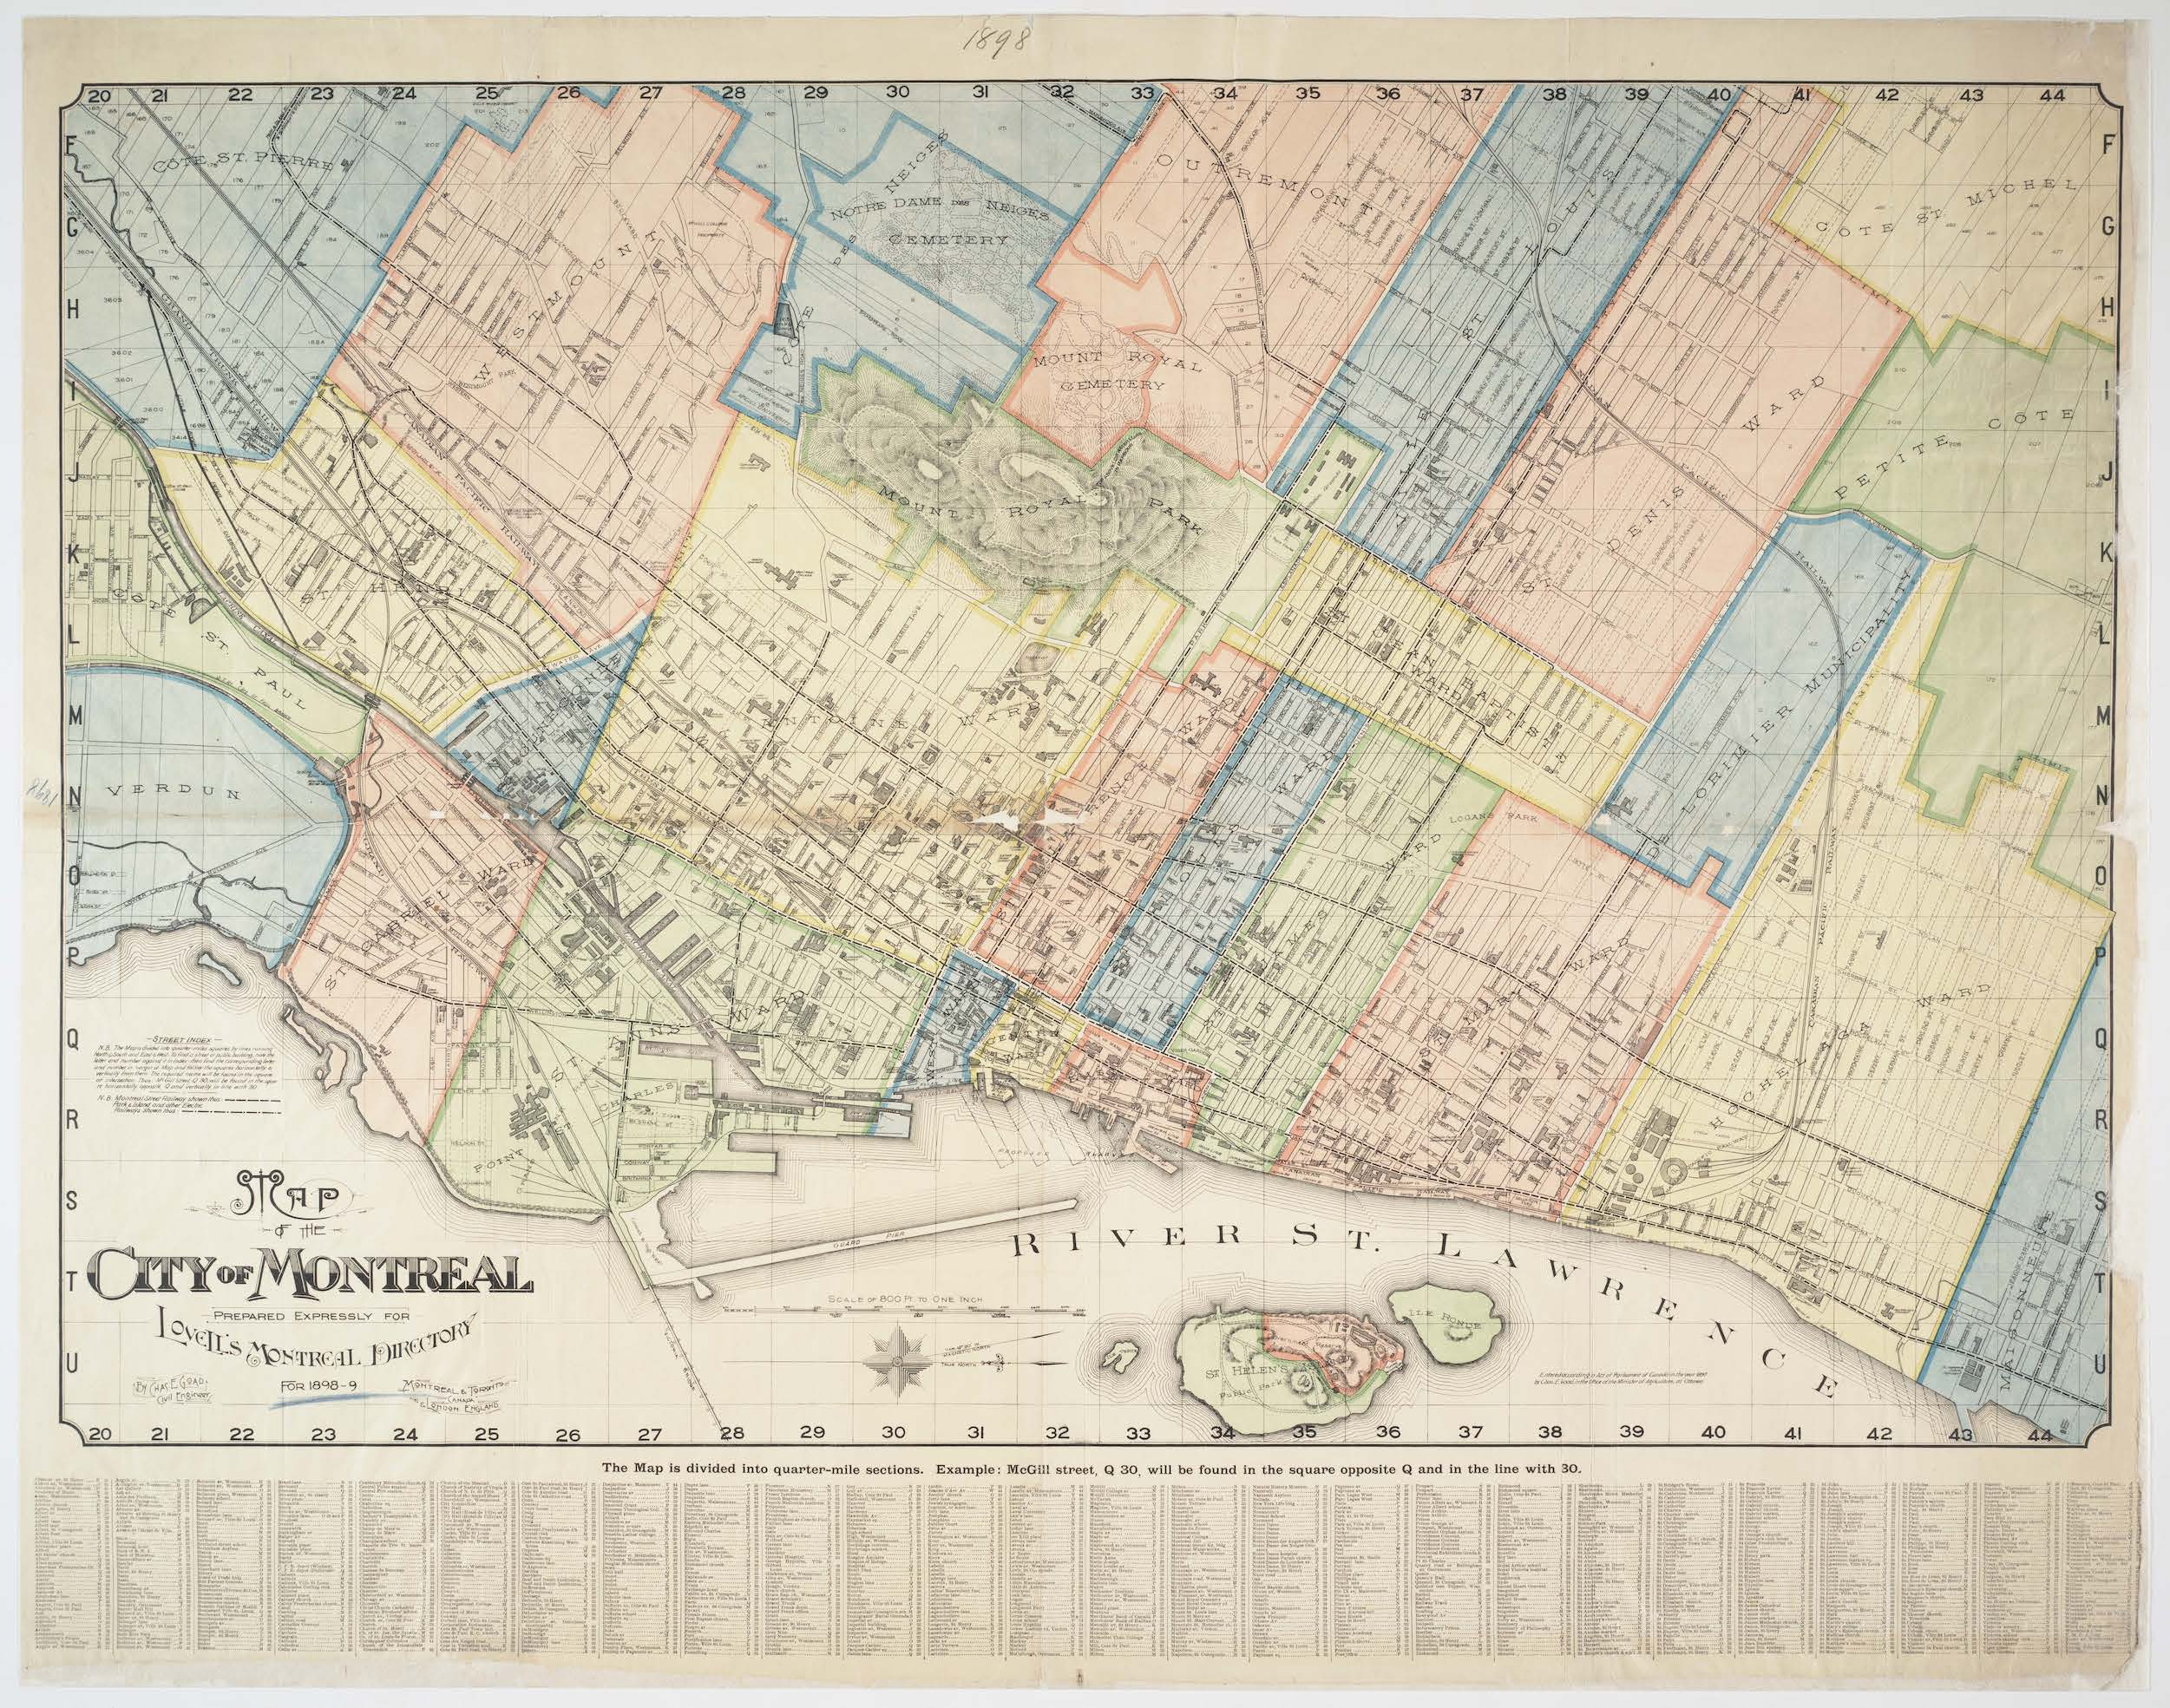 Map of the city of Montreal : prepared expressly for Lovell's Montreal Directory for 1898 by Charles E Goad.